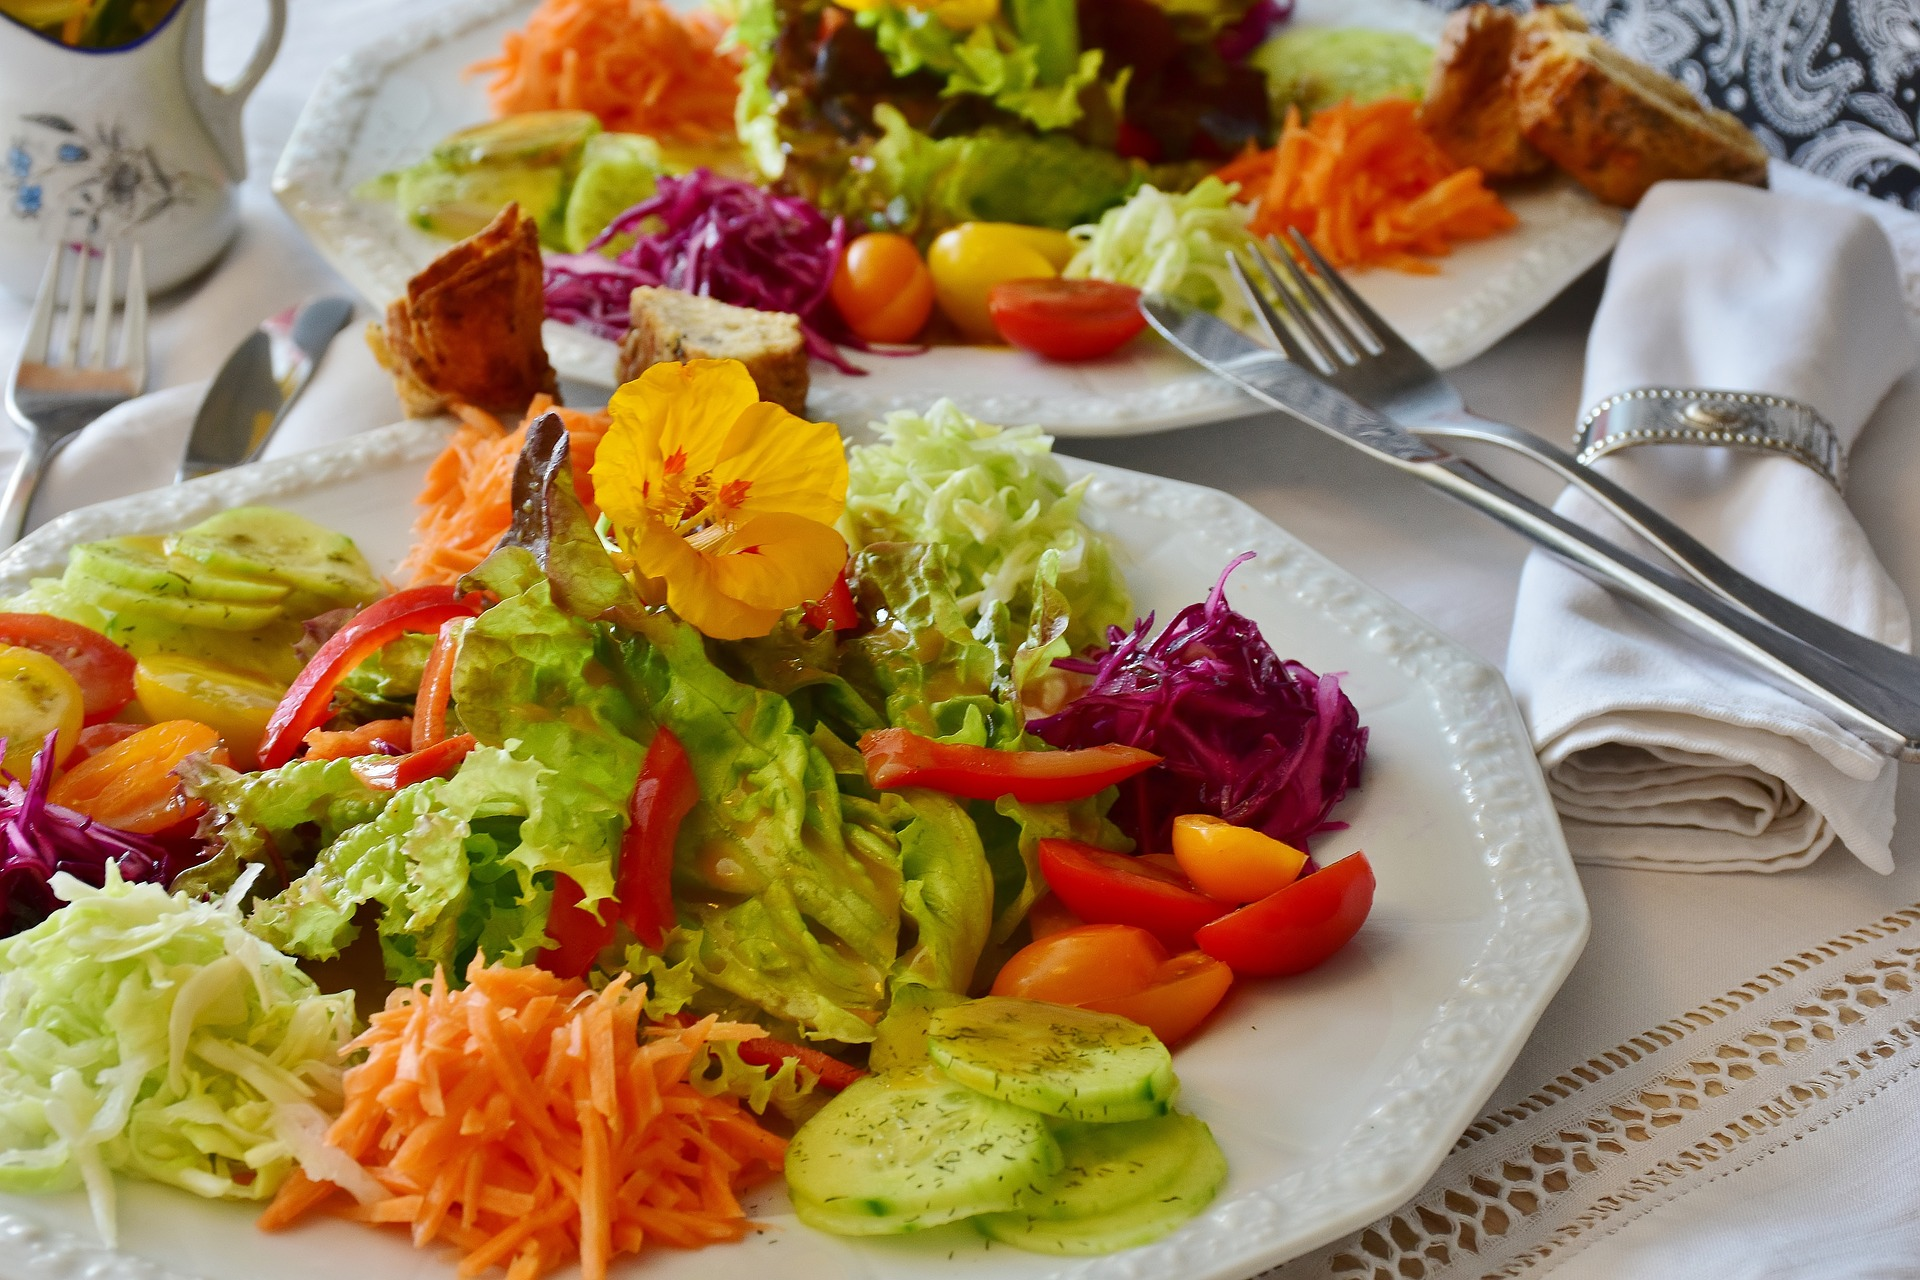 German salads are the best and usually served before the main meal